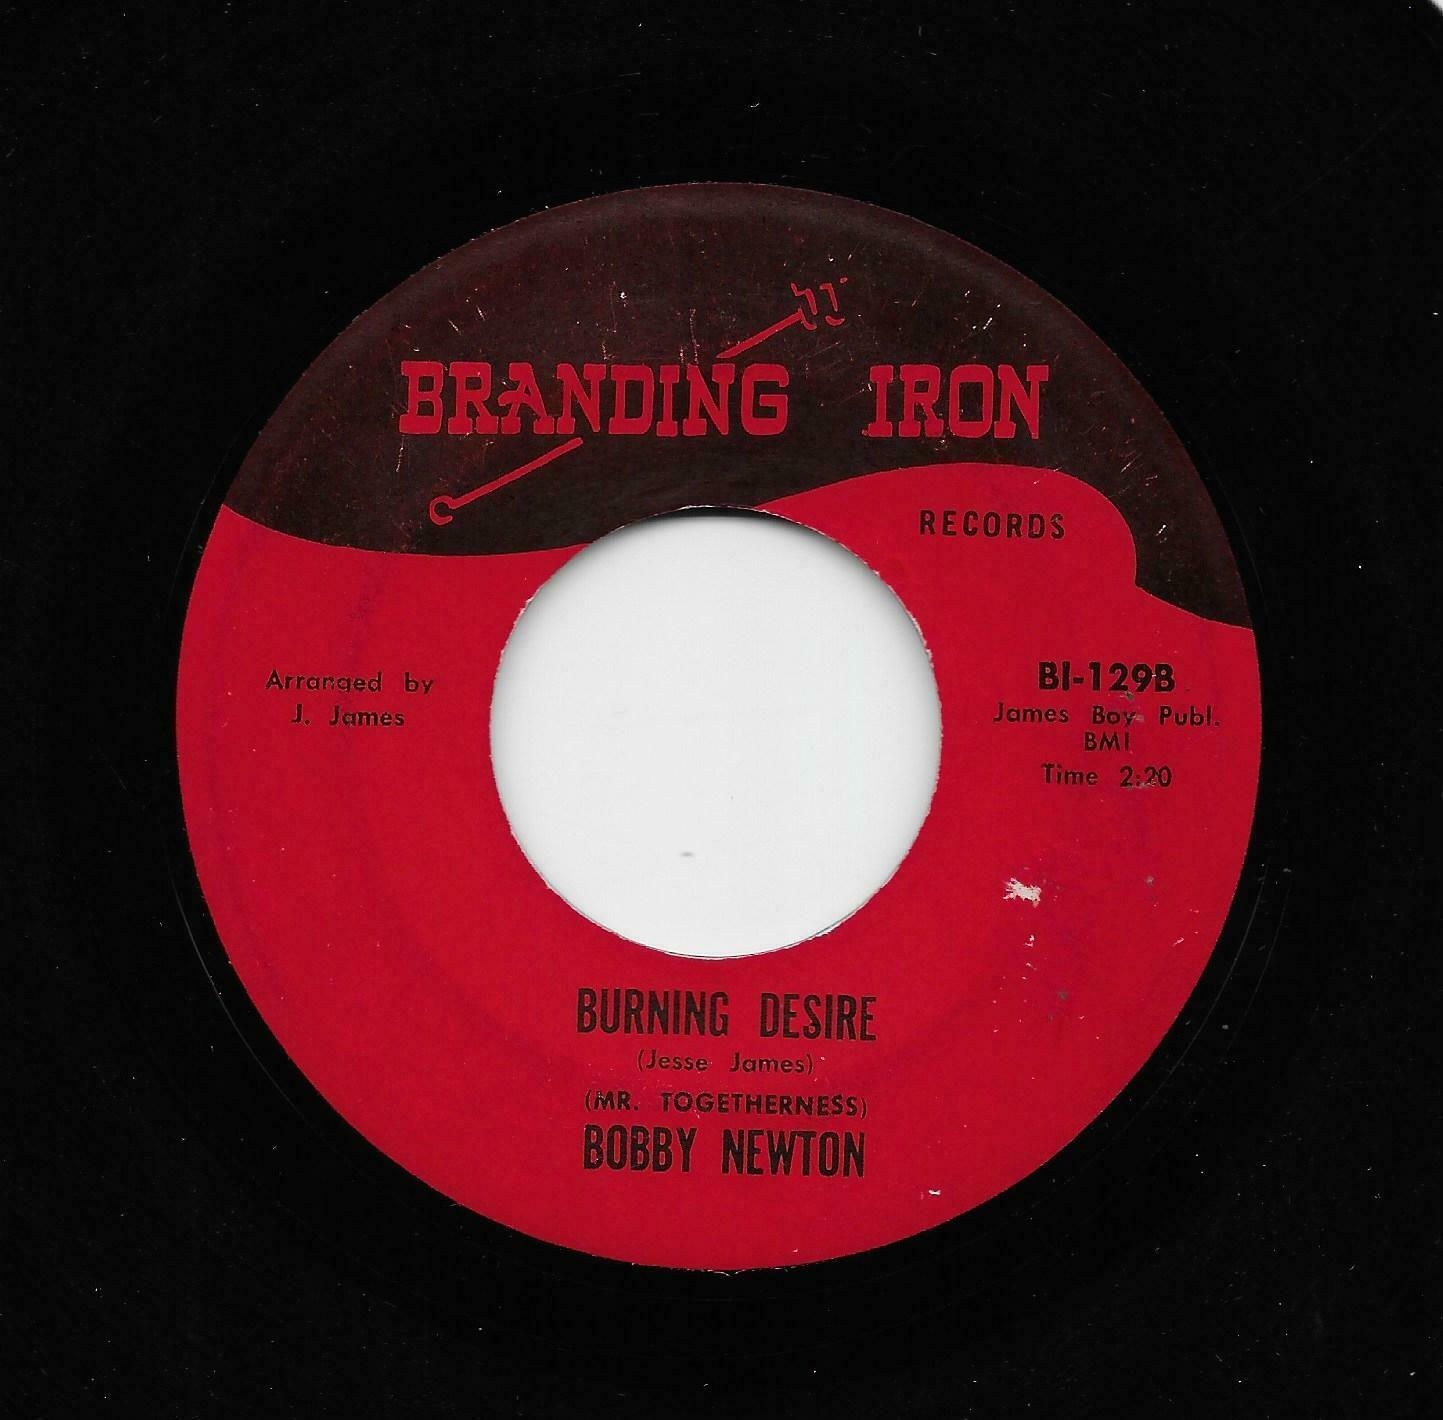 Bobby Newton - Burning Desire / We Got Our Thing Together (Soul/Funk, 45) 129